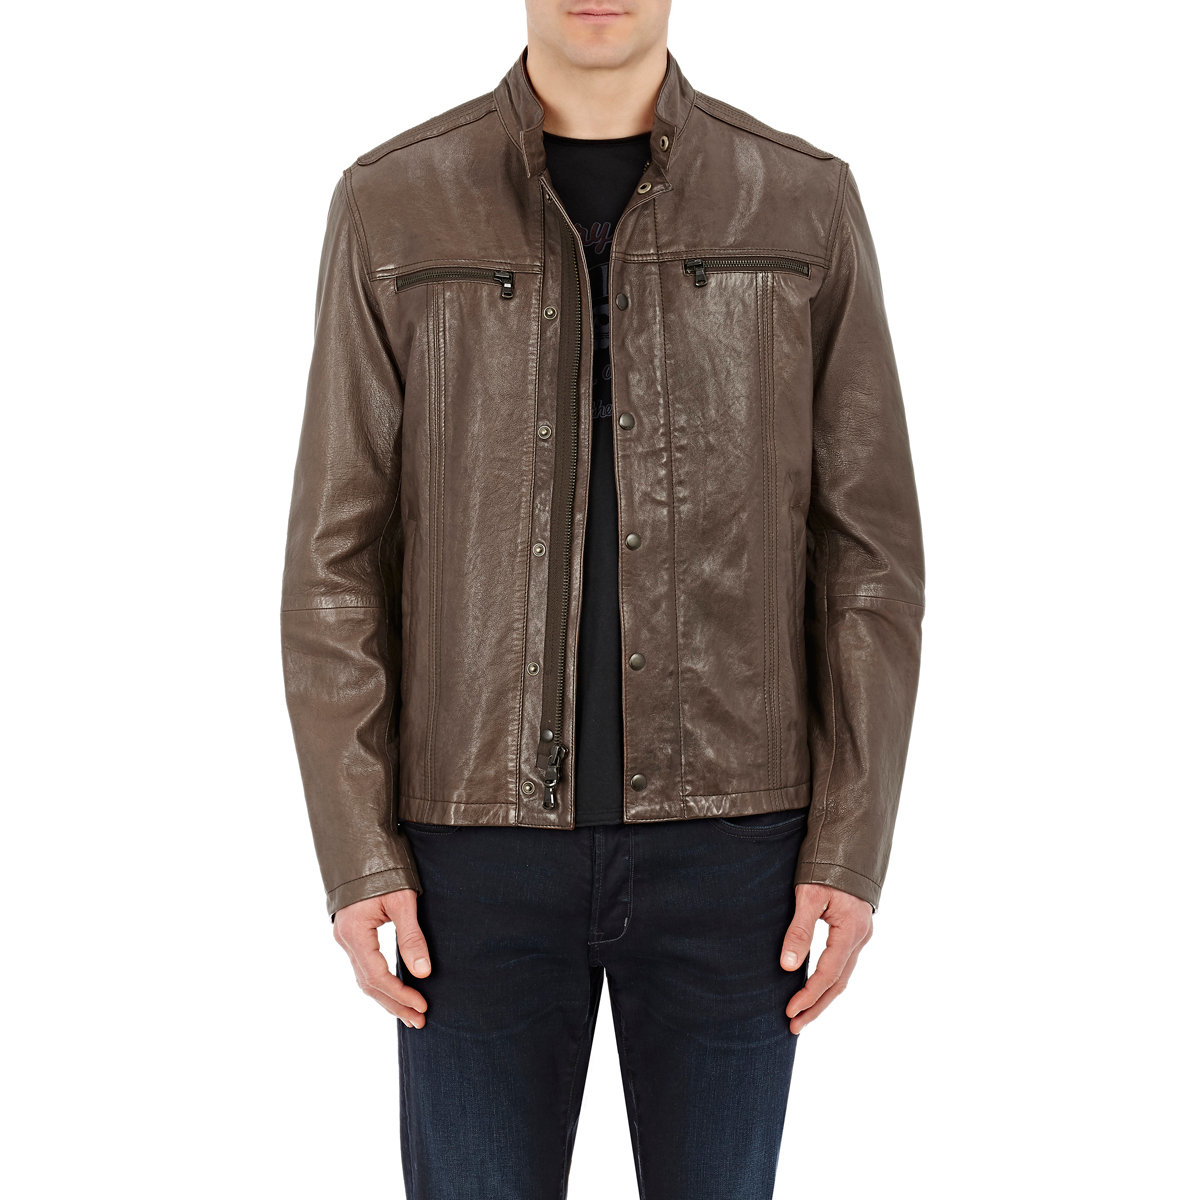 john varvatos leather cafe racer jacket in brown | lyst